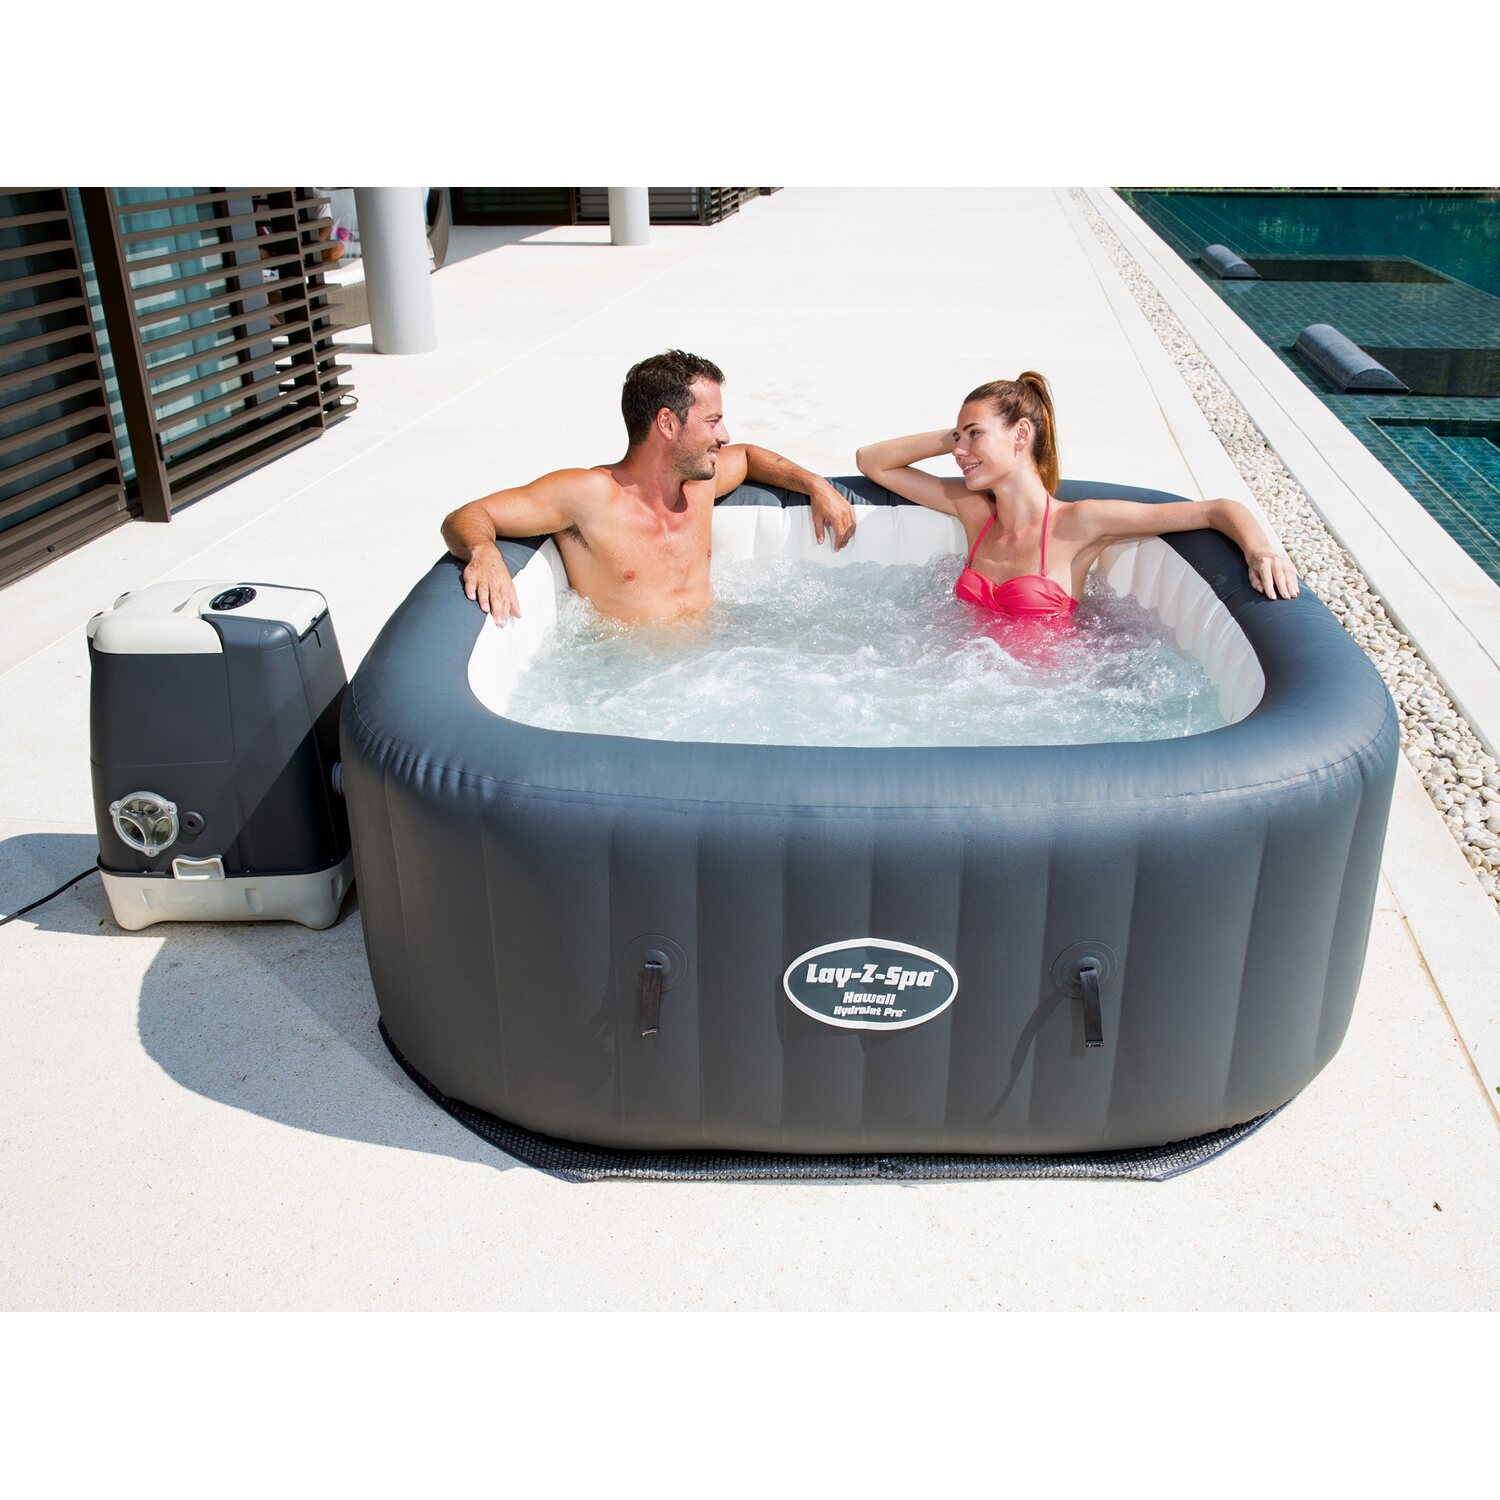 Bestway whirlpool lay z spa hawaii hydrojet pro kaufen bei obi for Bestway pool bei obi